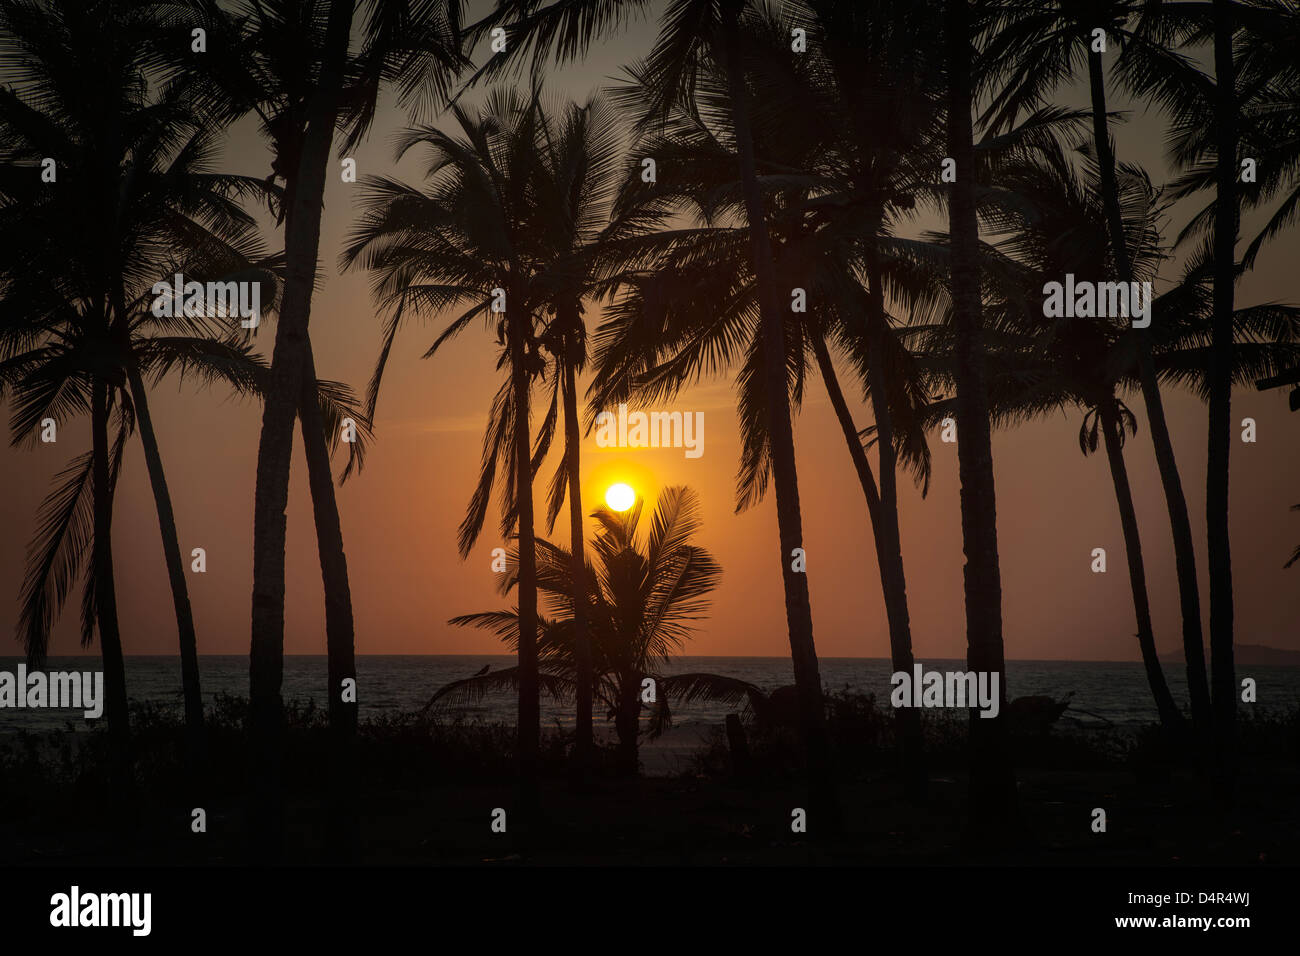 Sunset at Arossim Beach, Southern Goa, India. Palm trees silhouetted. Stock Photo